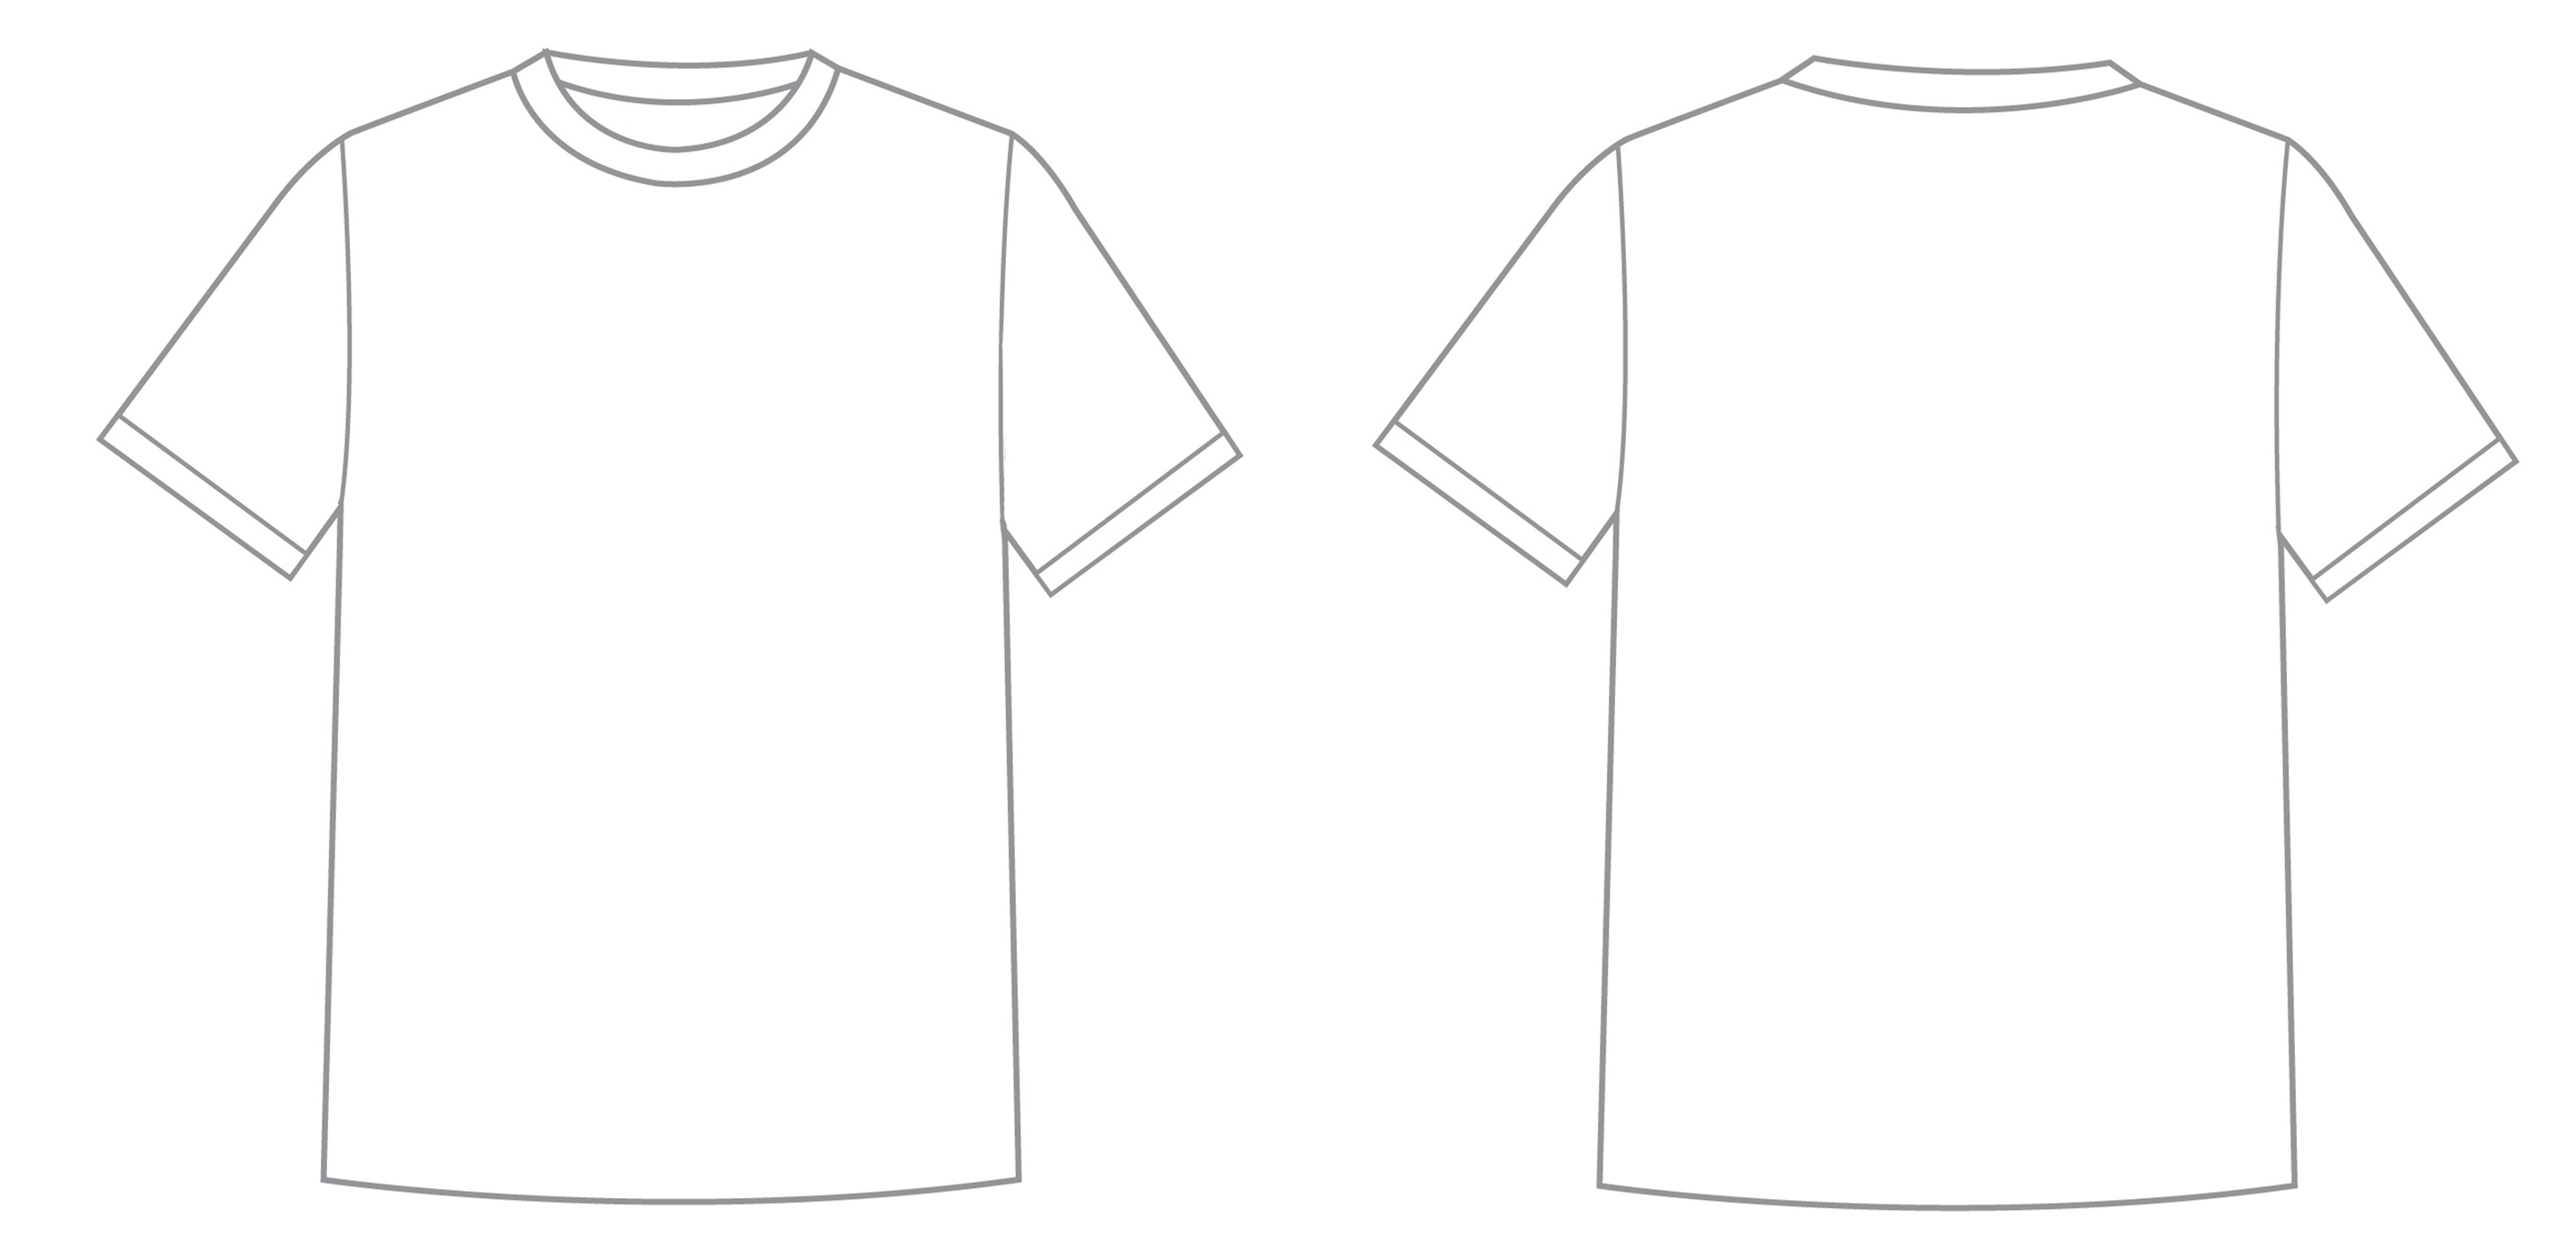 Create At Shirt Template Togowpartco - roblox shirt templates magdalene projectorg